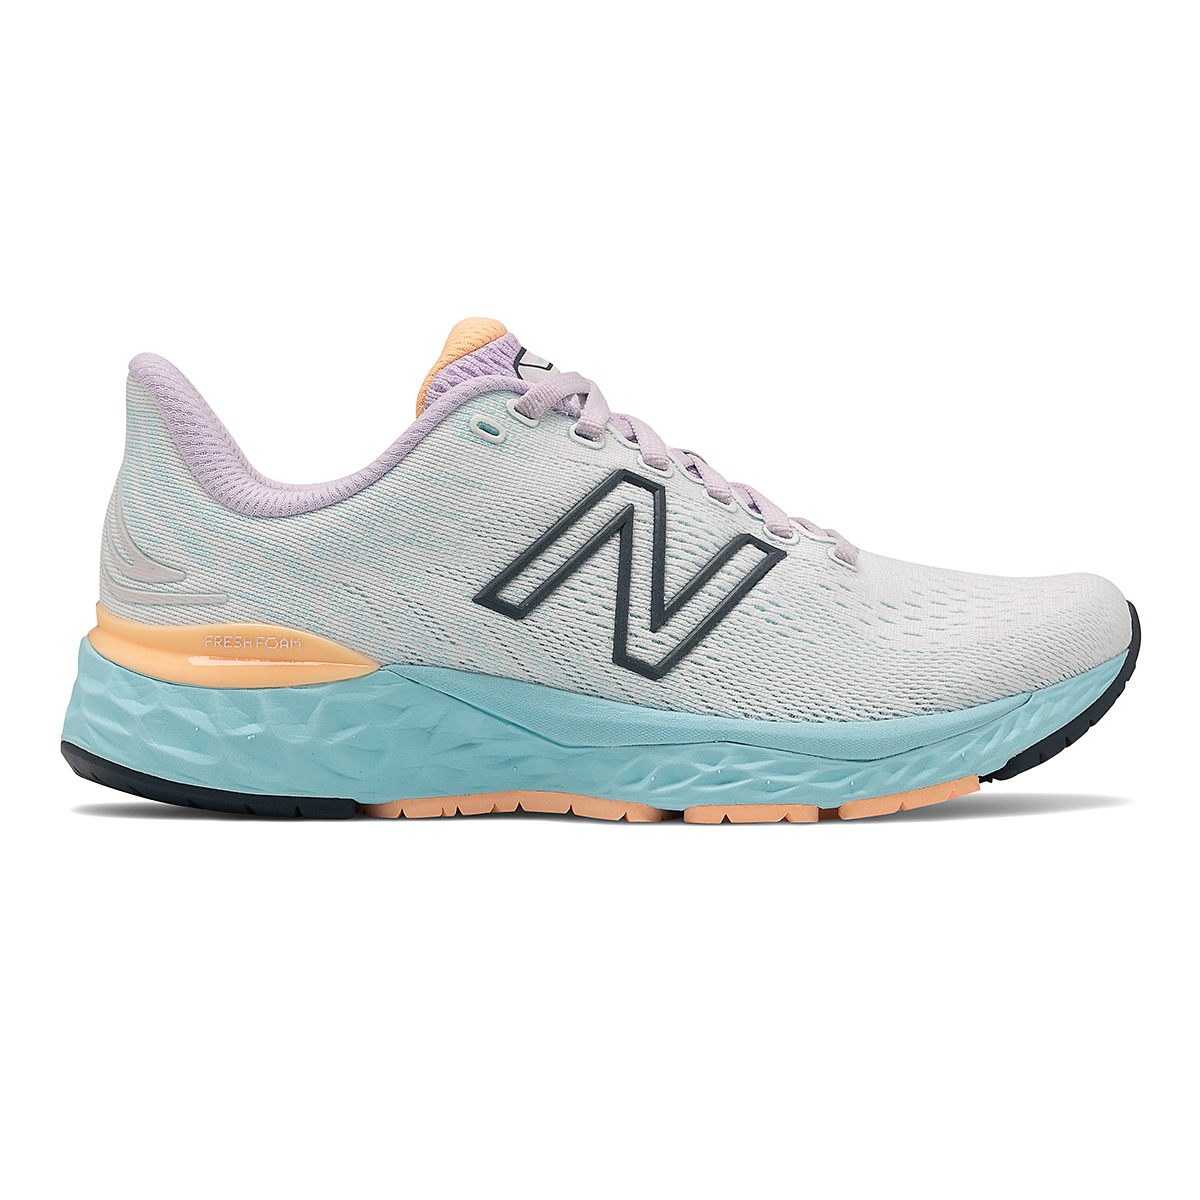 Women's New Balance 880V11 Running Shoe - Color: White/Blue Chill - Size: 5 - Width: Narrow, White/Blue Chill, large, image 1